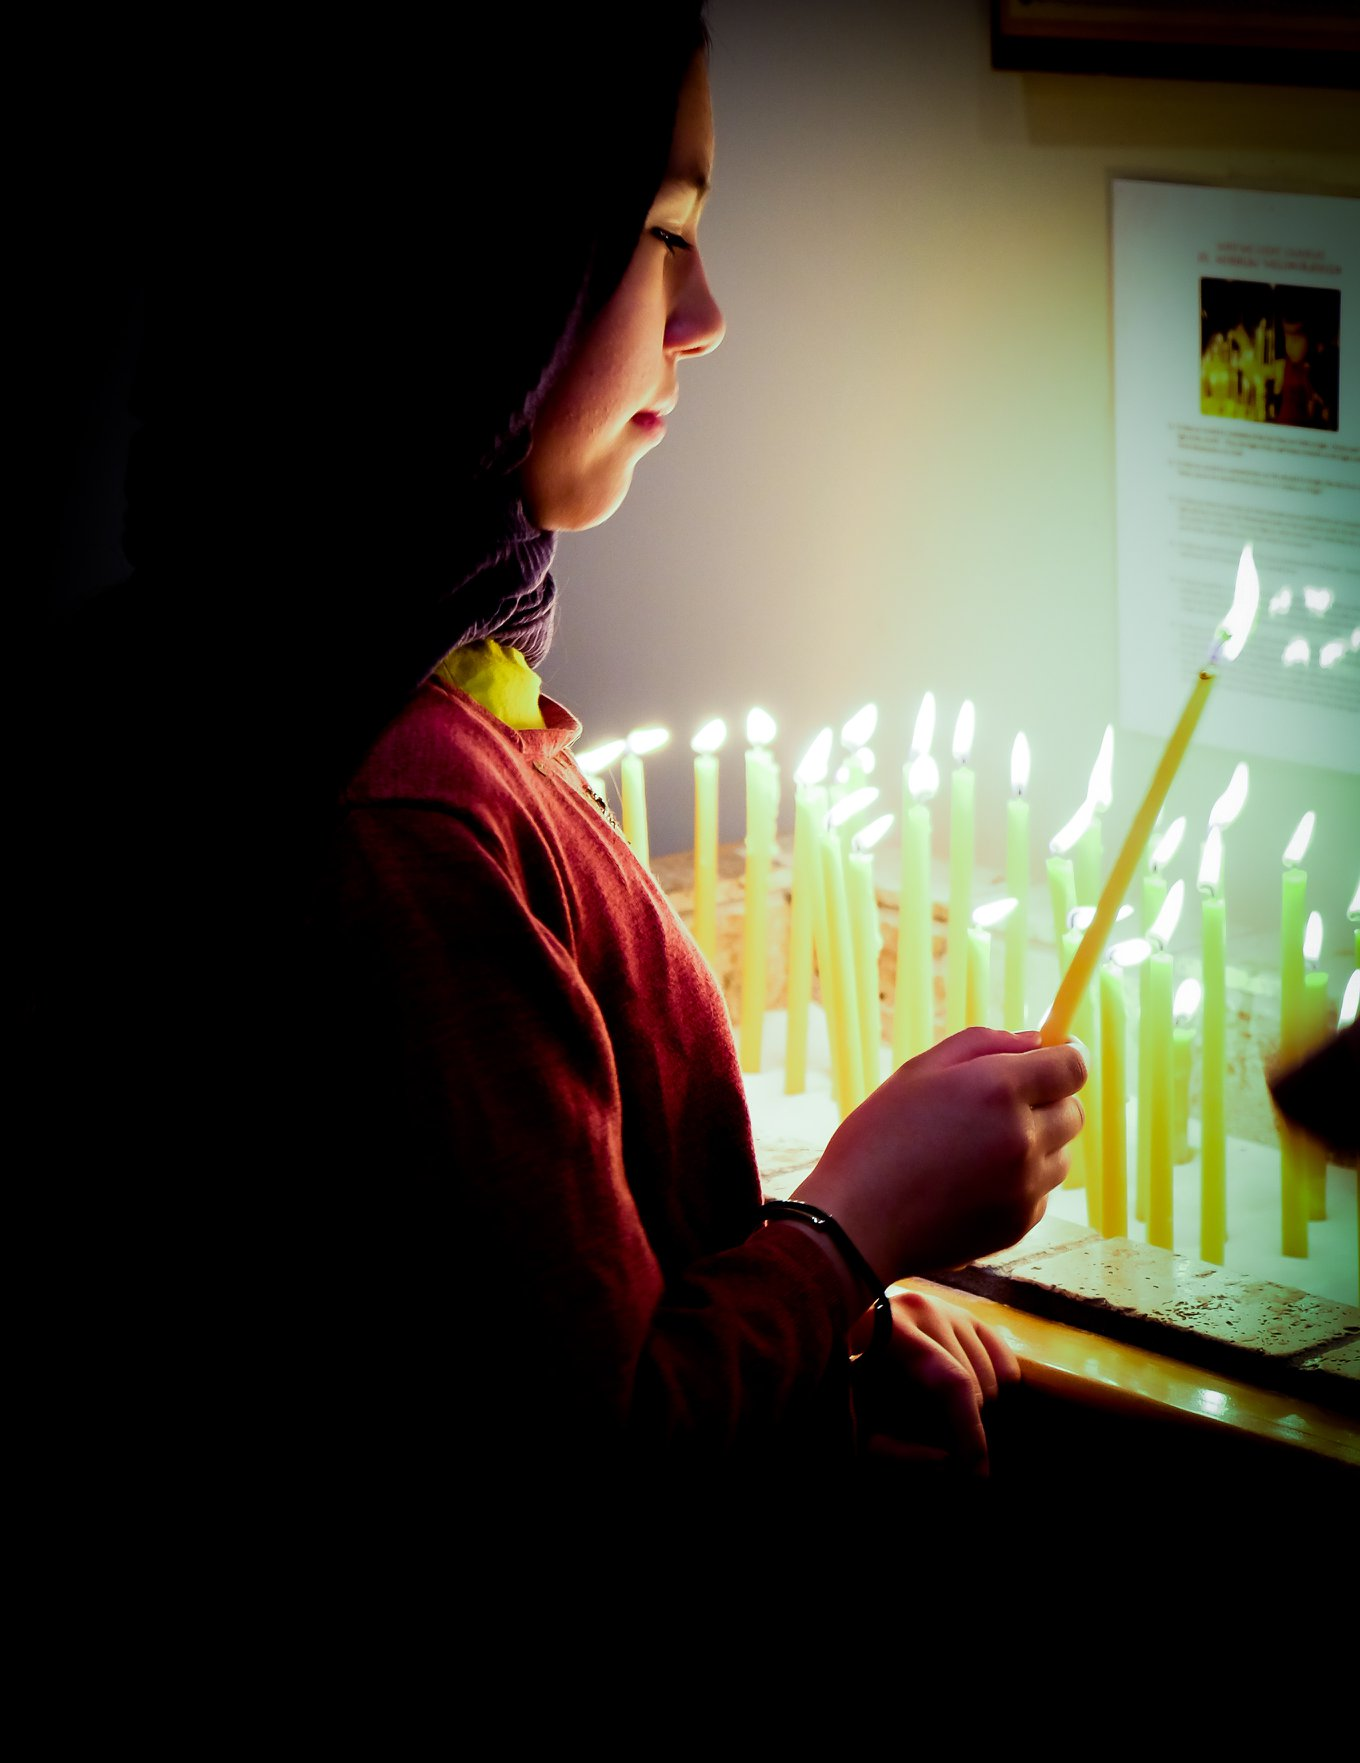 young girl lighting candle from candle stand in shadow